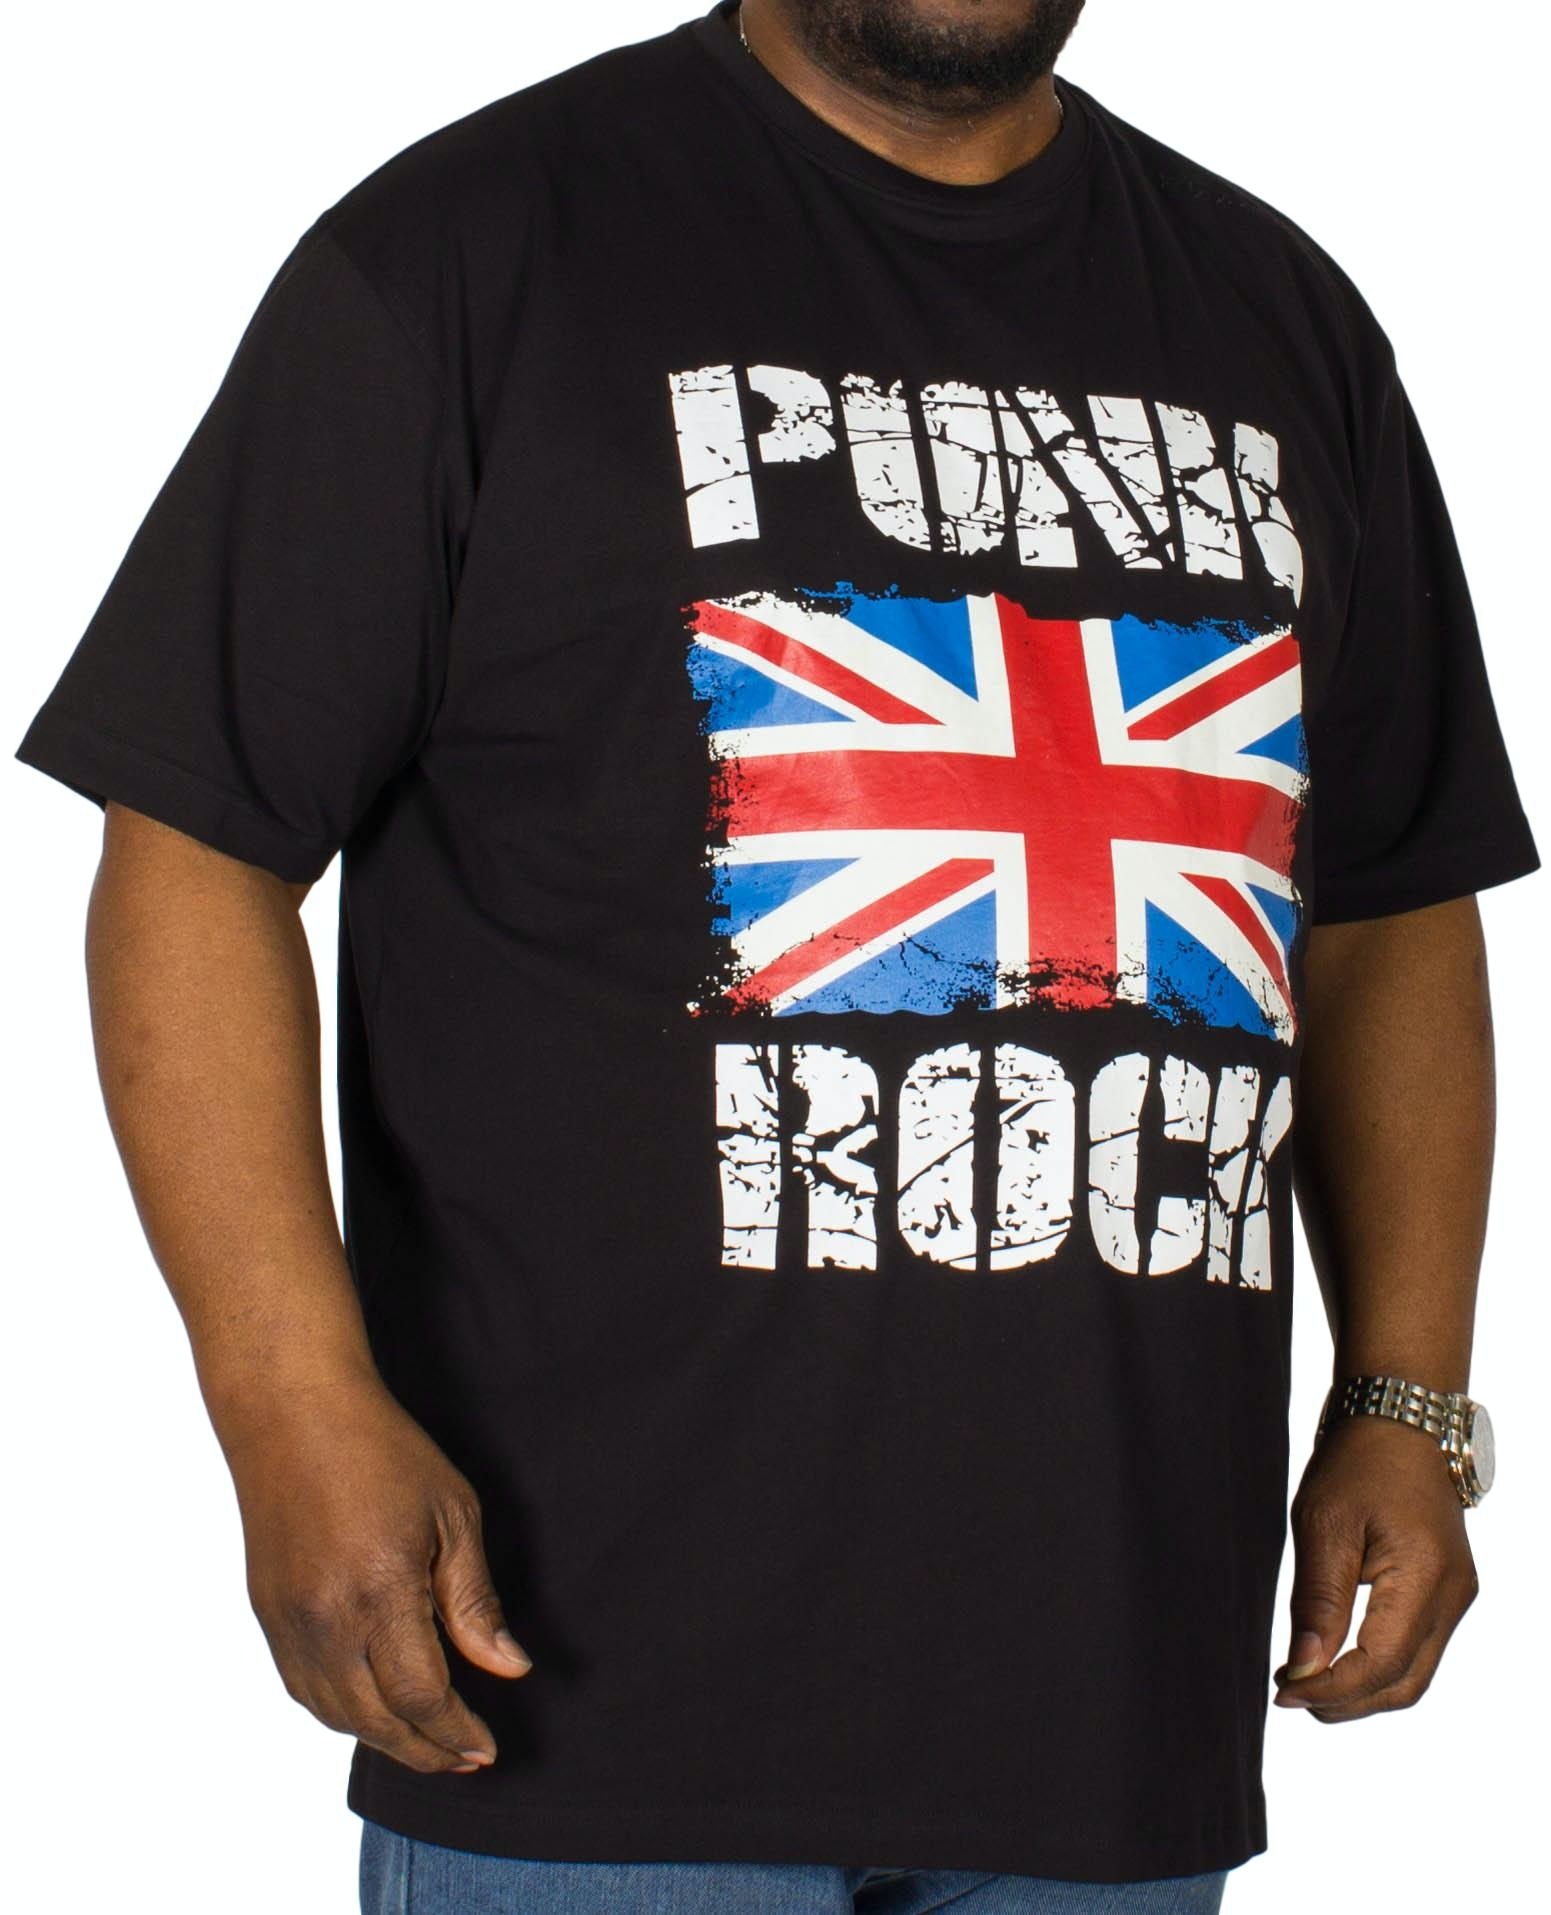 Espionage Punk Rock Printed T-Shirt Black